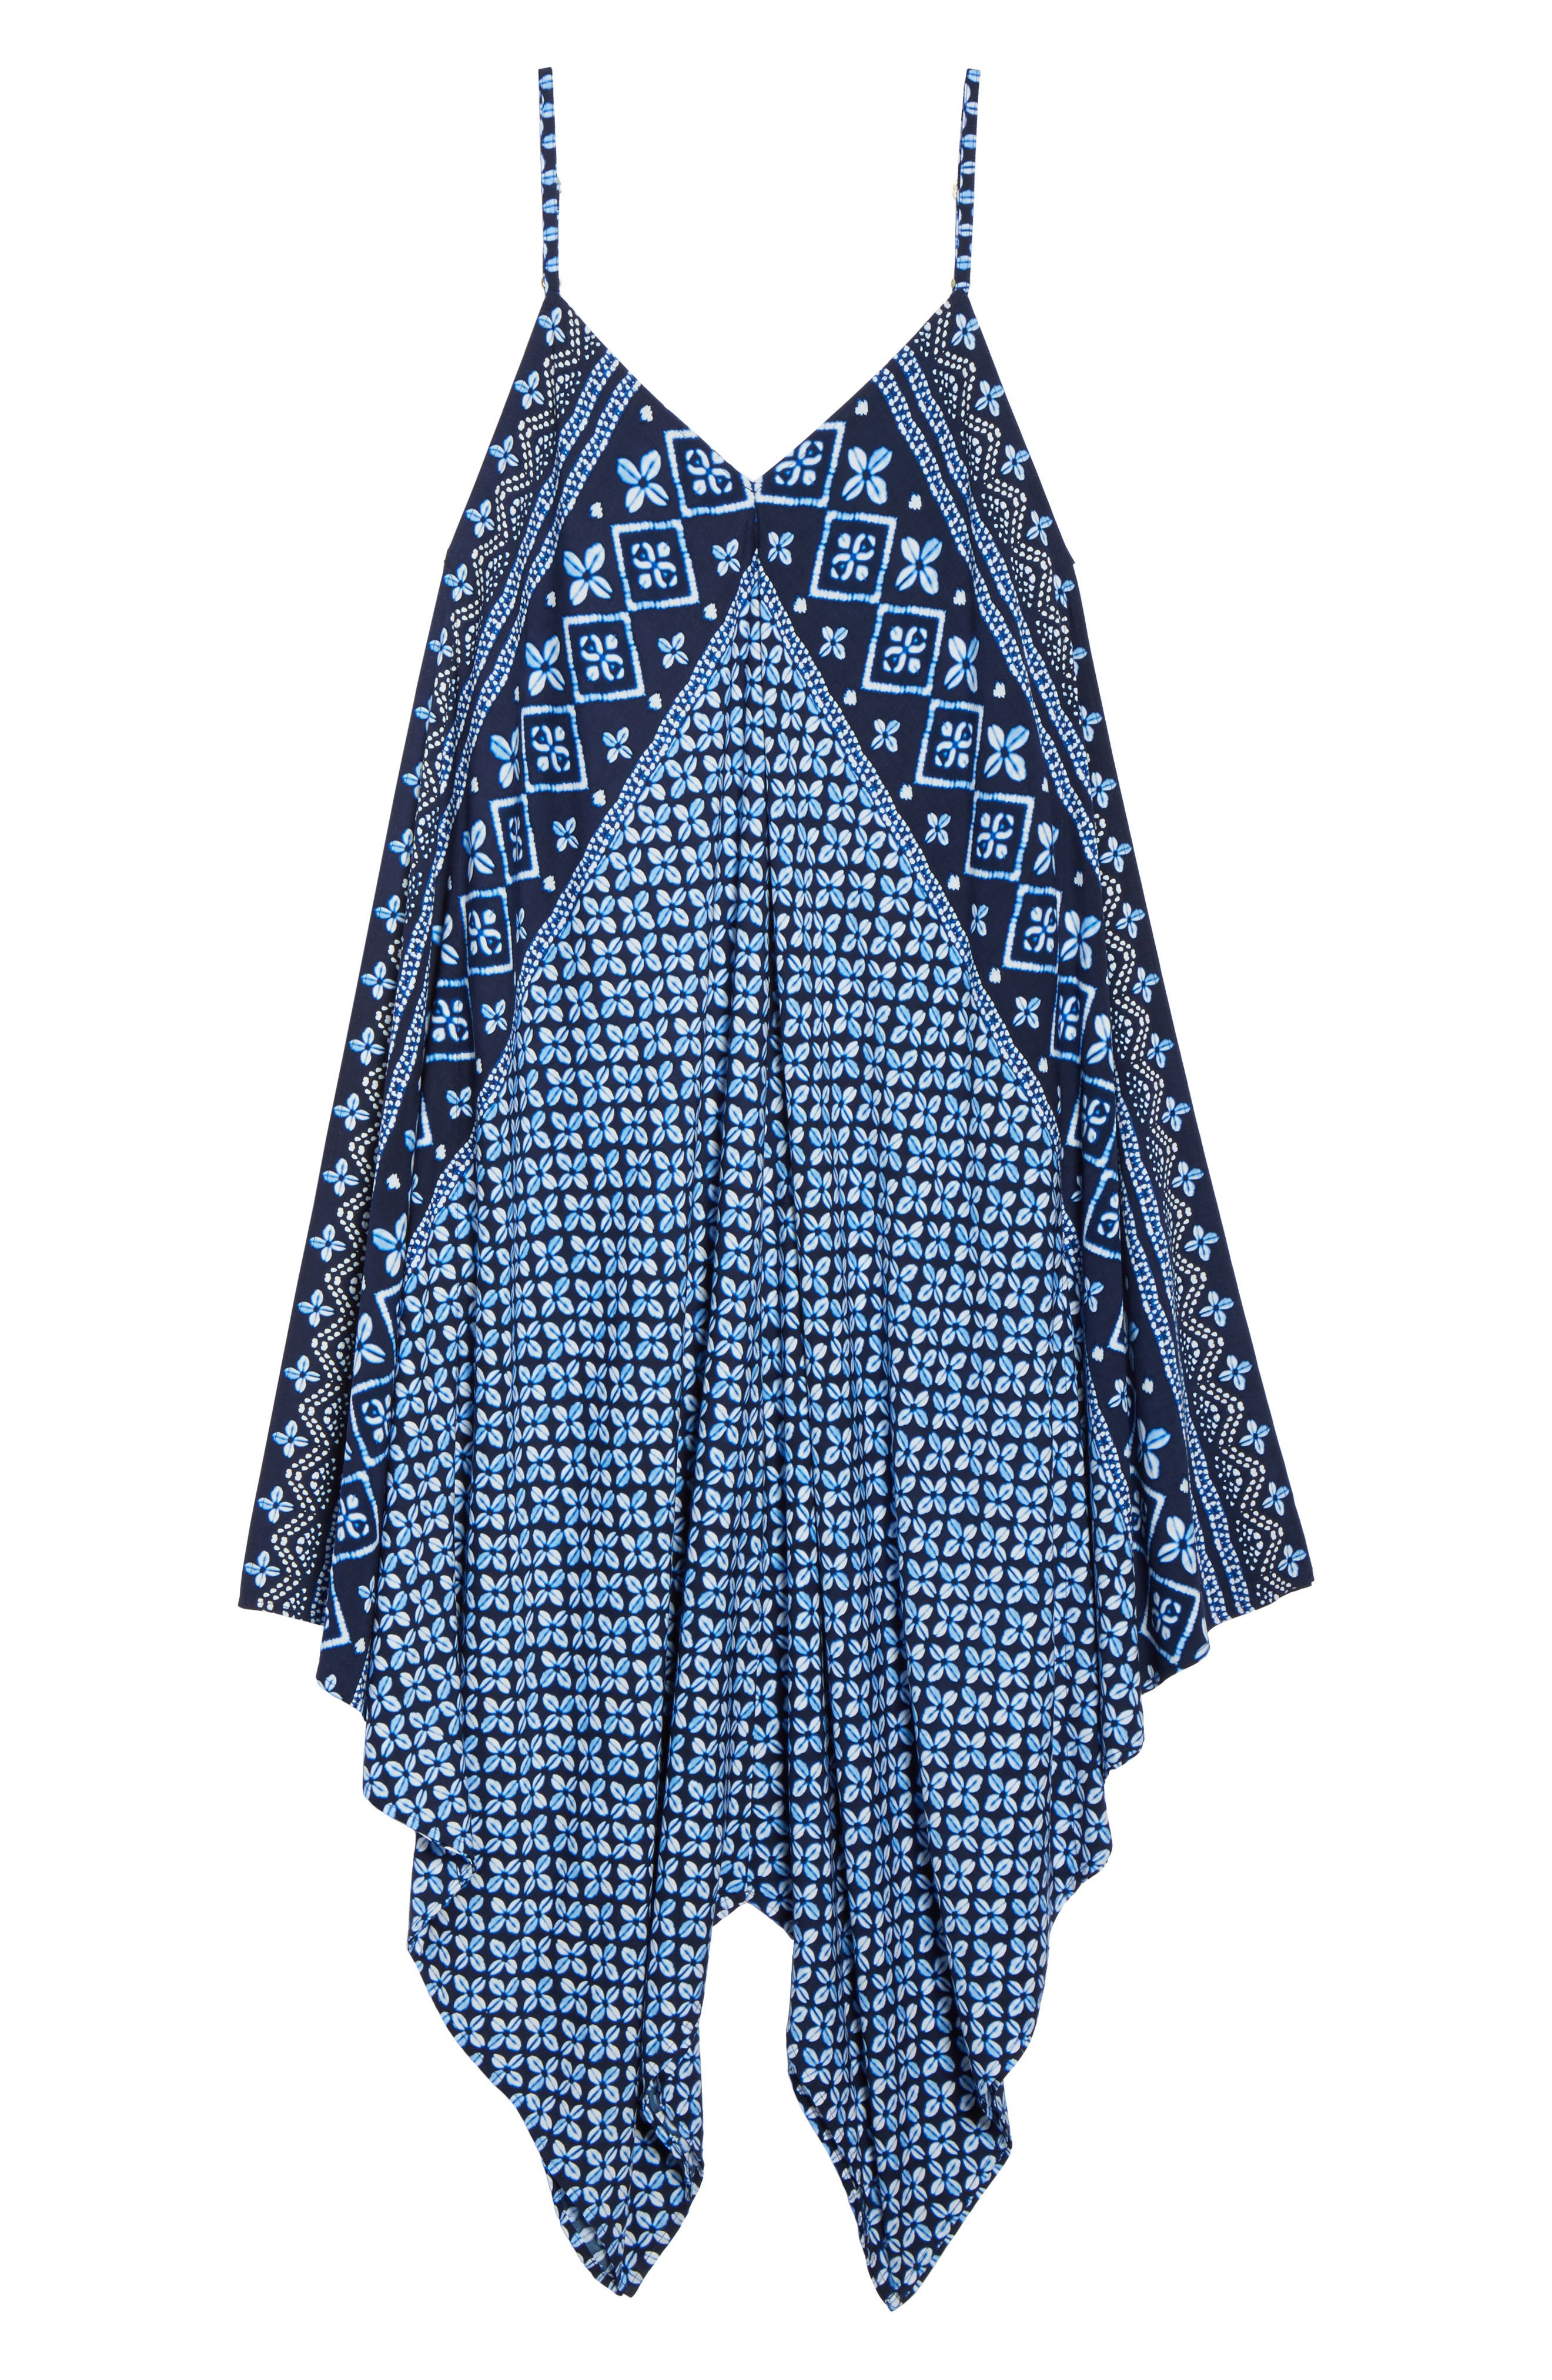 Indigo Cowrie Diamonds Cover-Up Dress,                             Alternate thumbnail 6, color,                             MARE